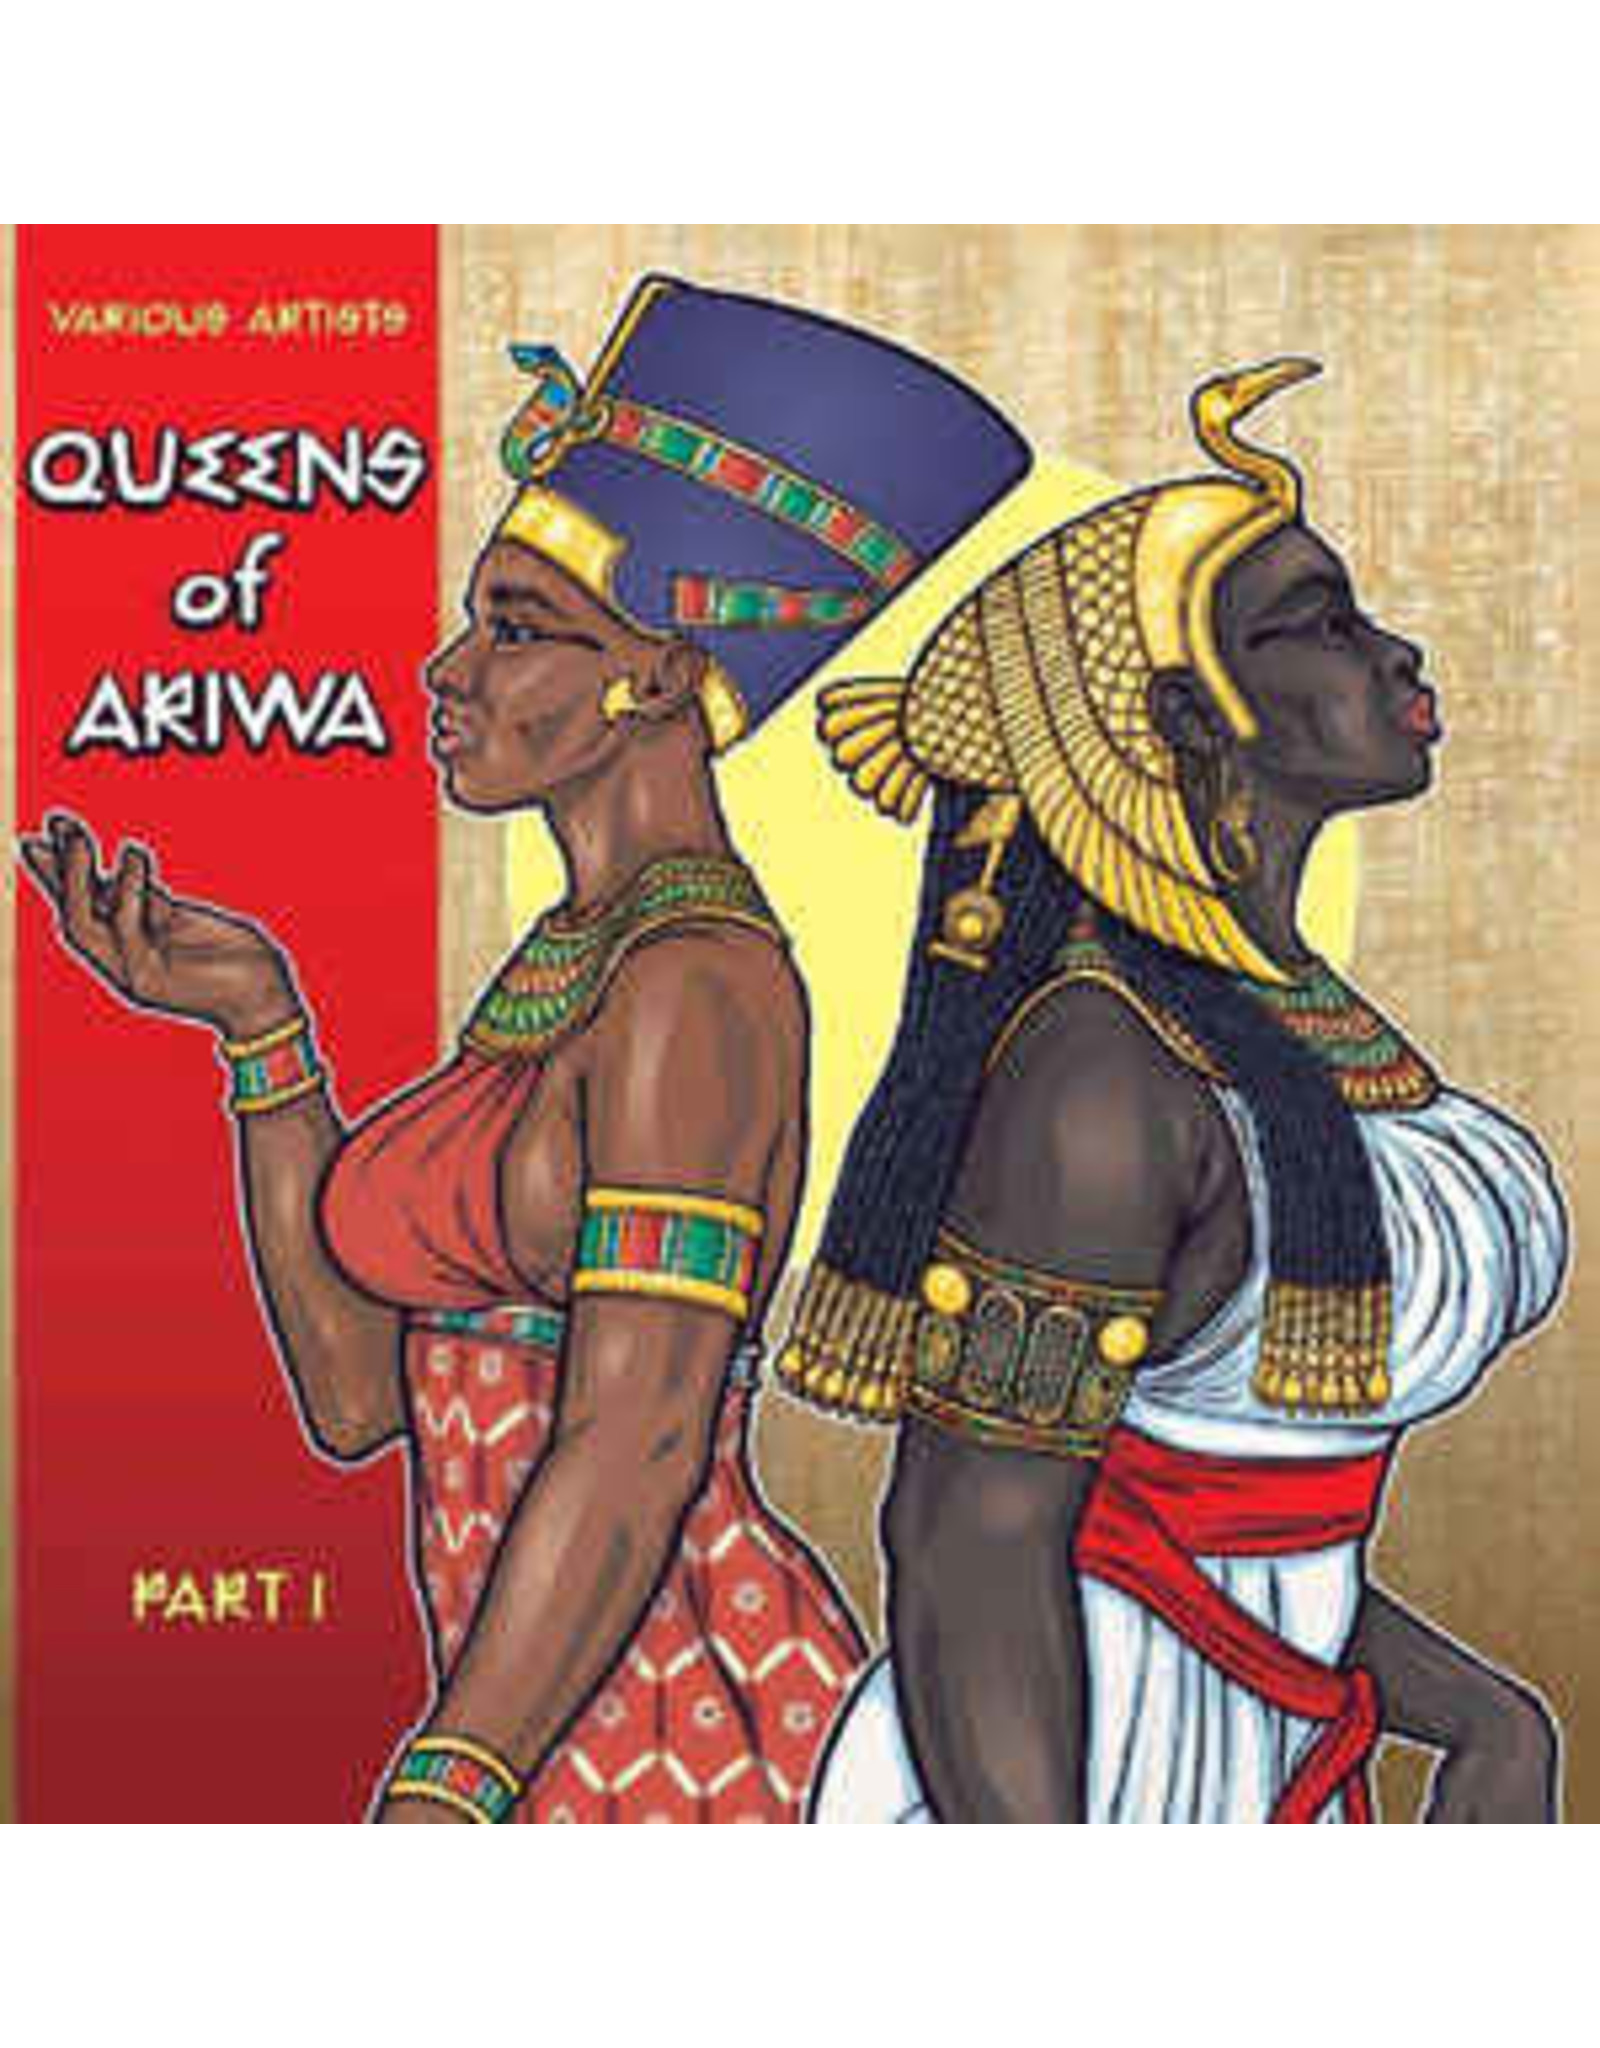 New Vinyl Various - Queens Of ARIWA Pt. 1 LP